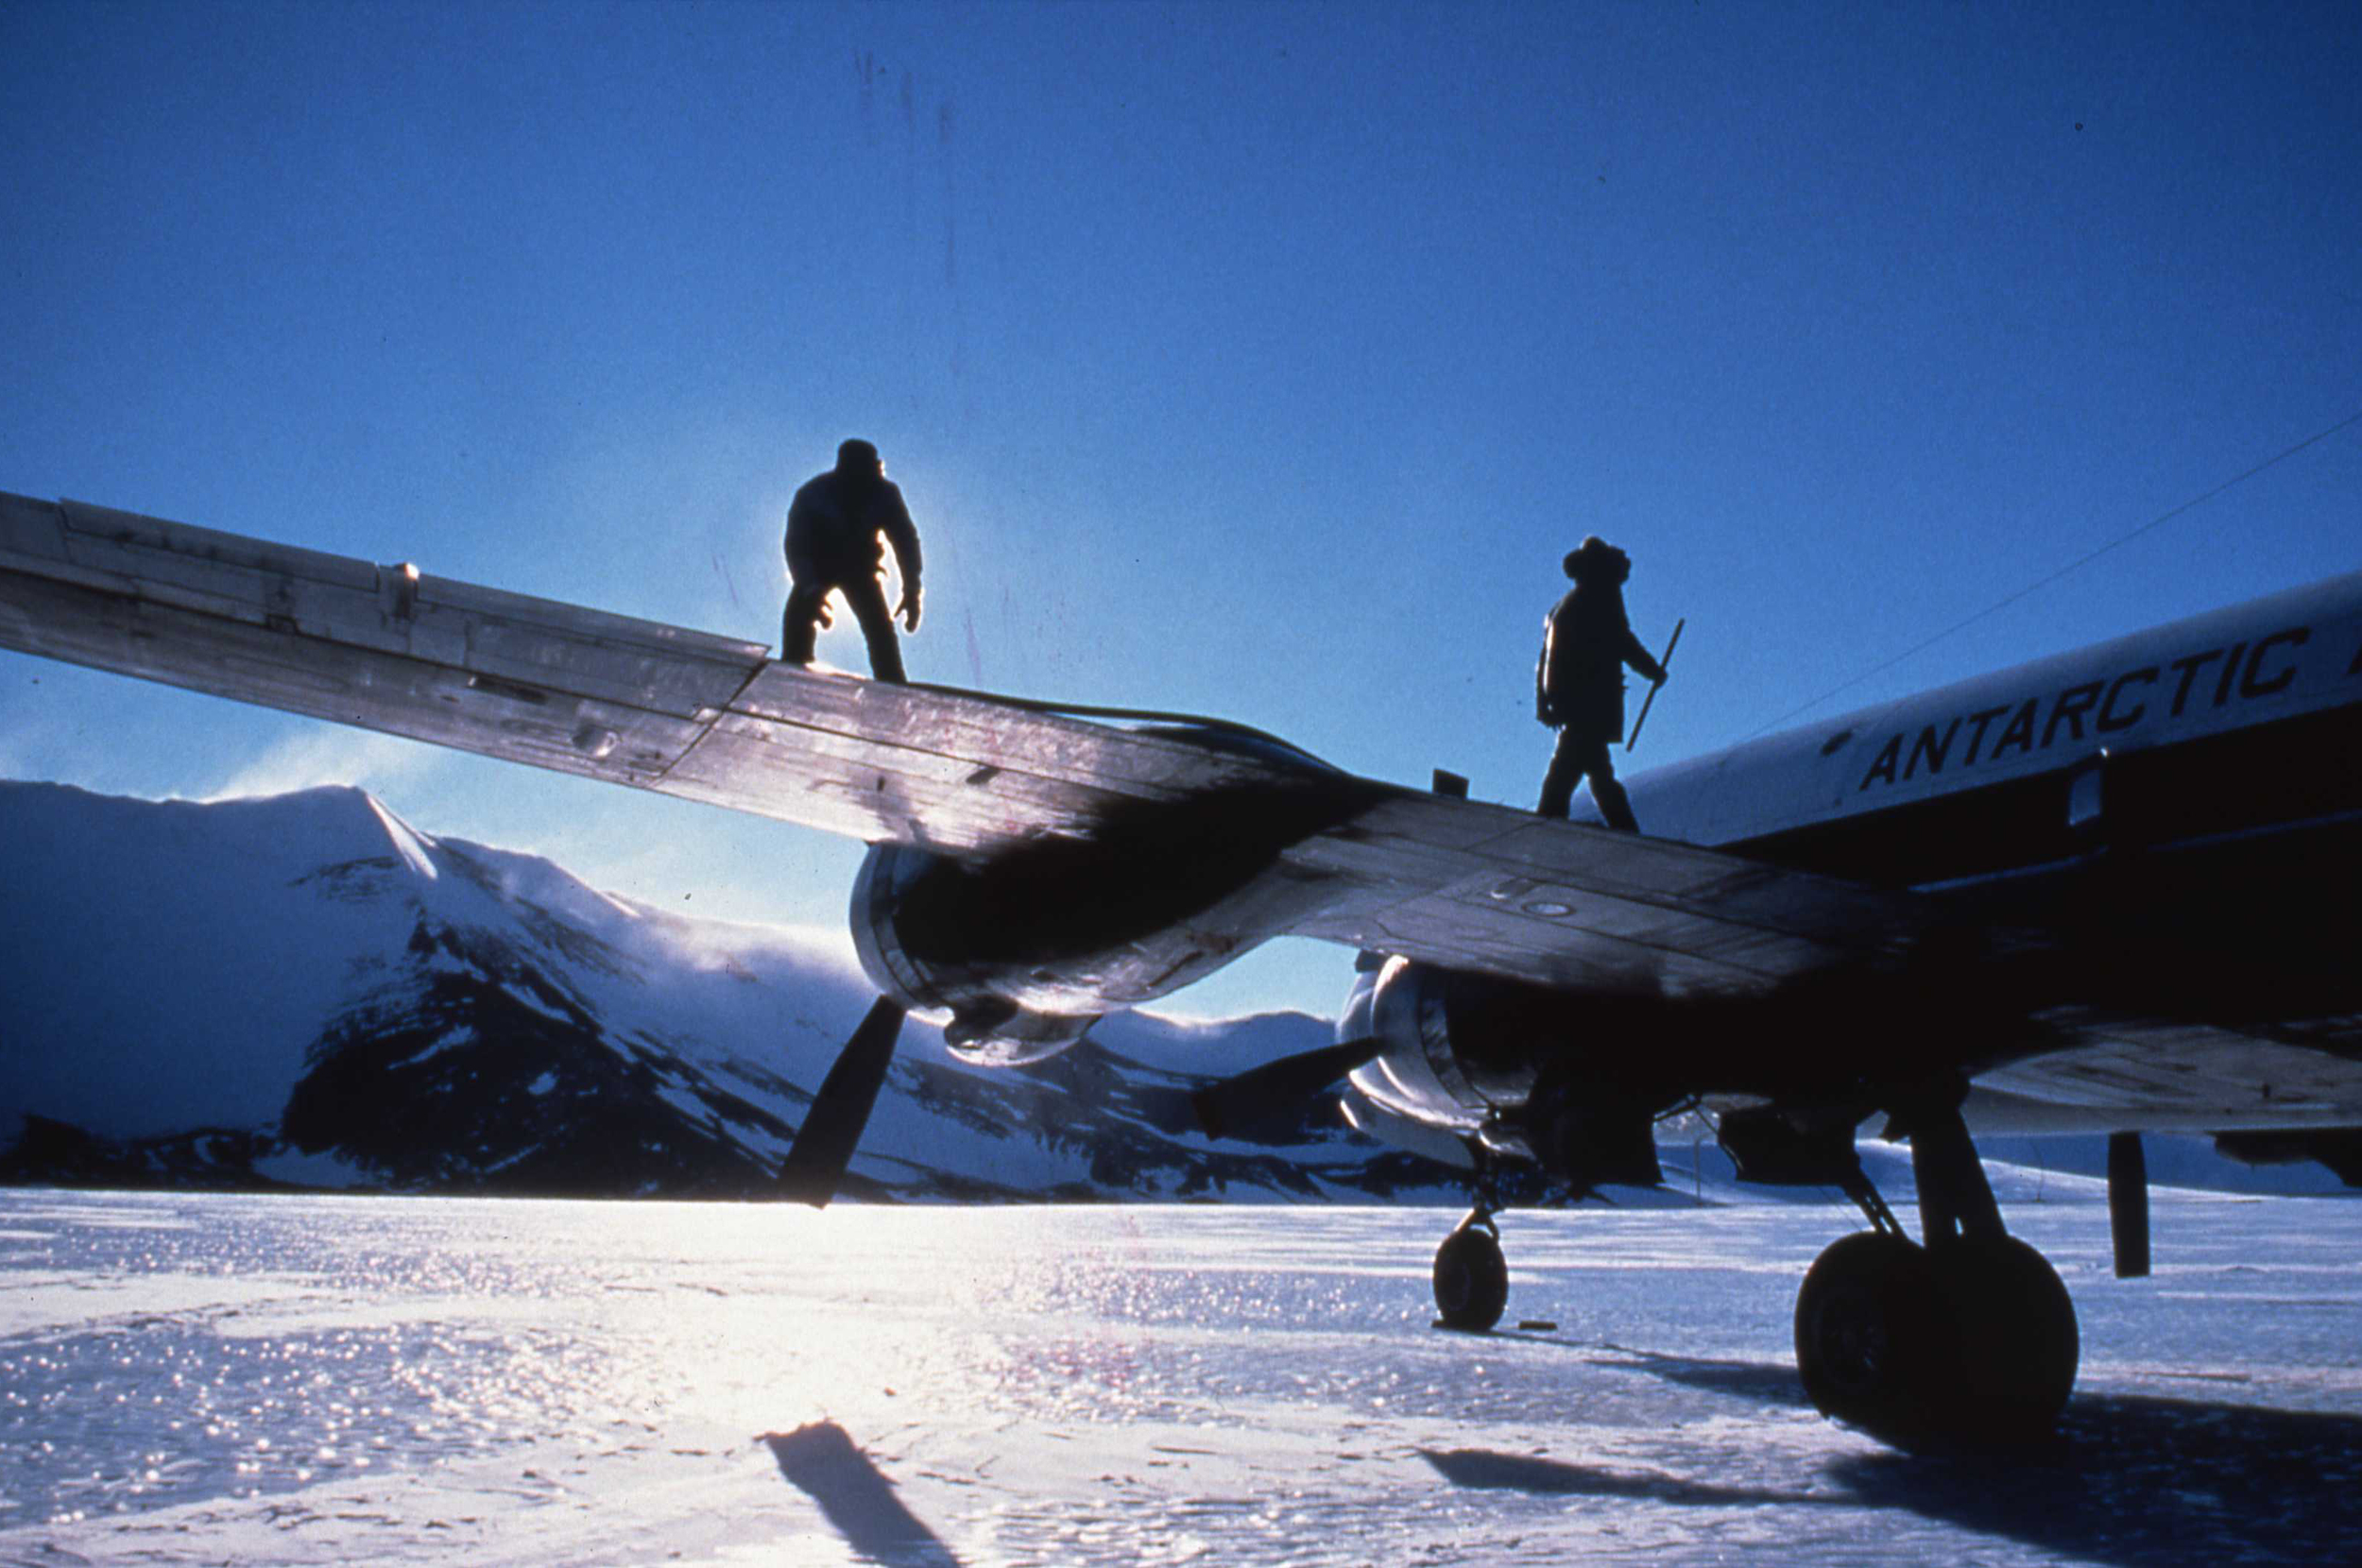 Blue ice runway at the Patriot Hills base camp. ©Will Steger by Gordon Wiltsie